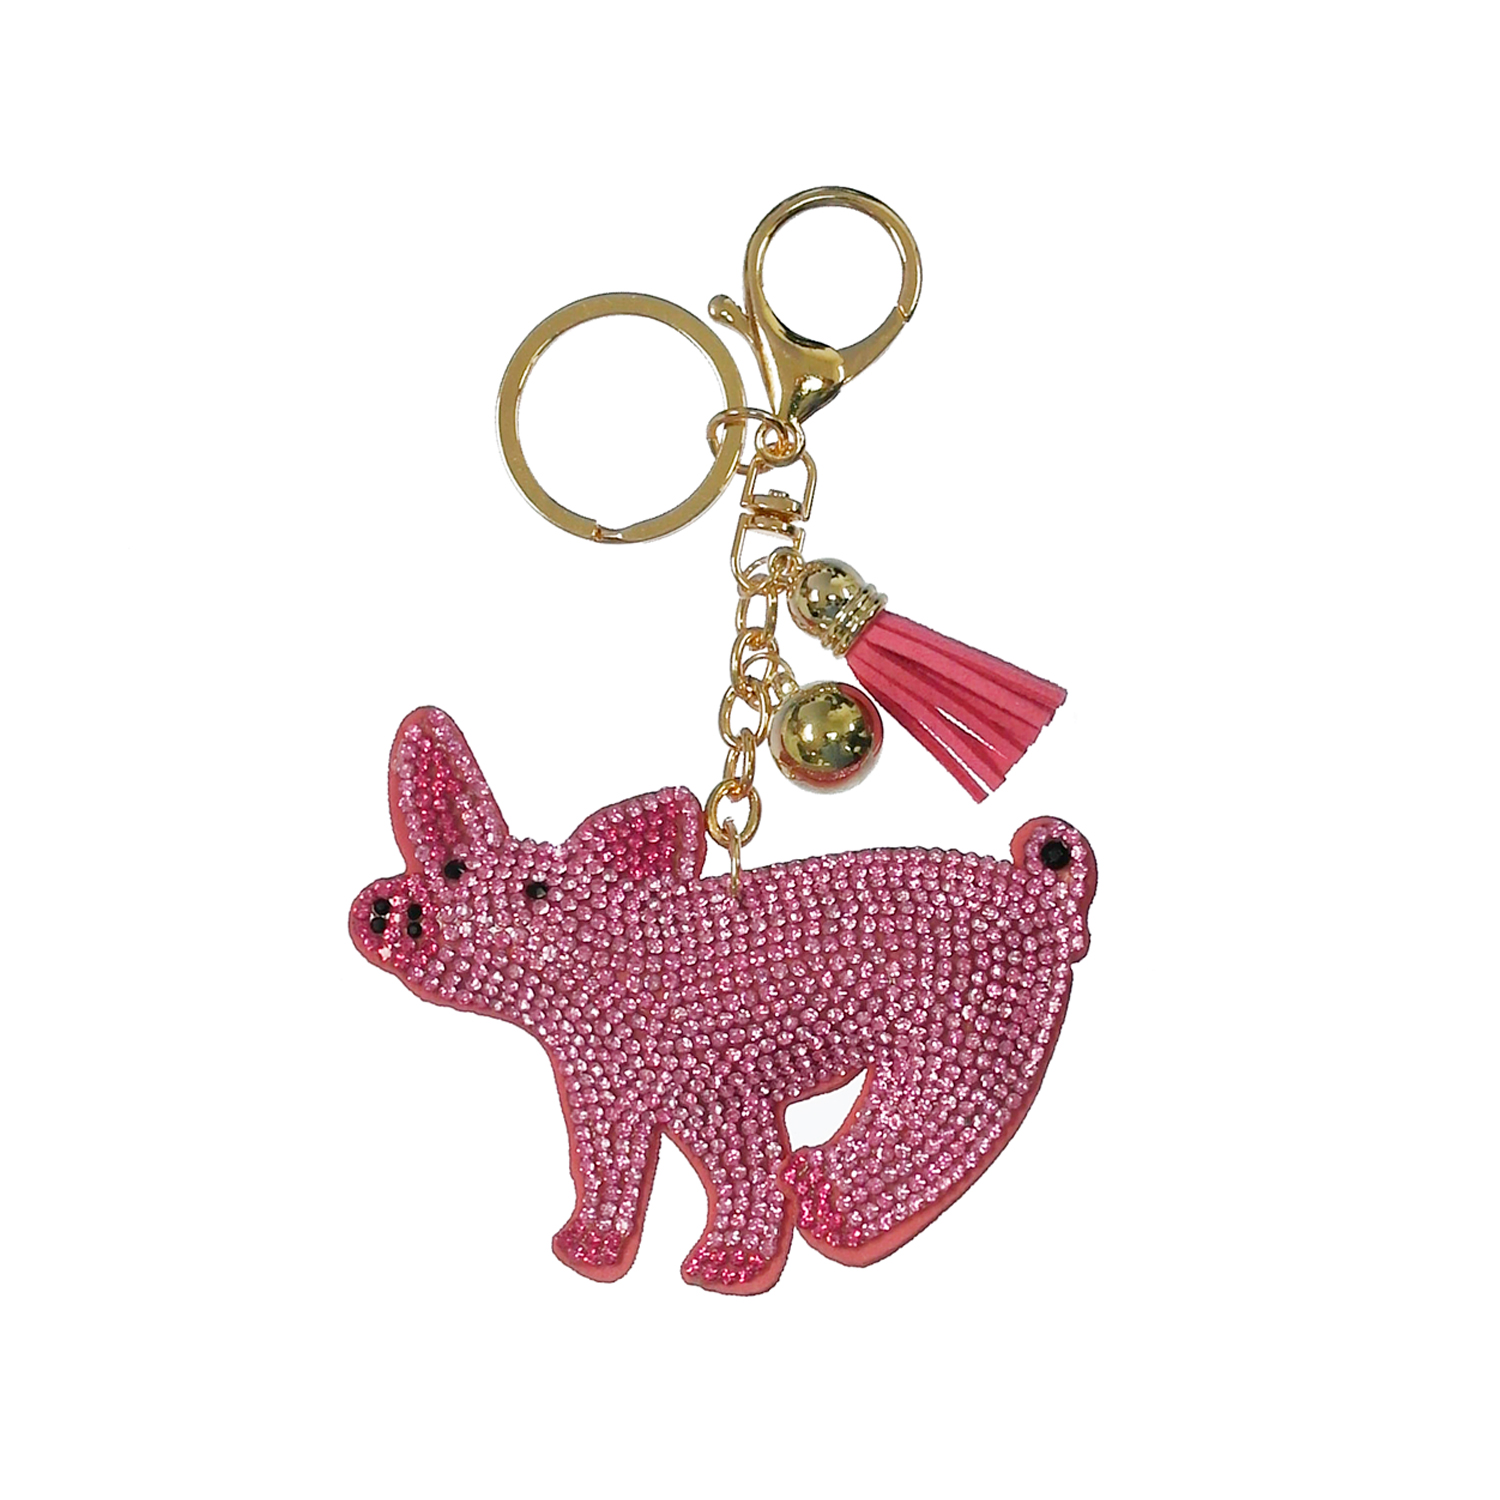 Accessories < Key Chains < Wholesale Keychain